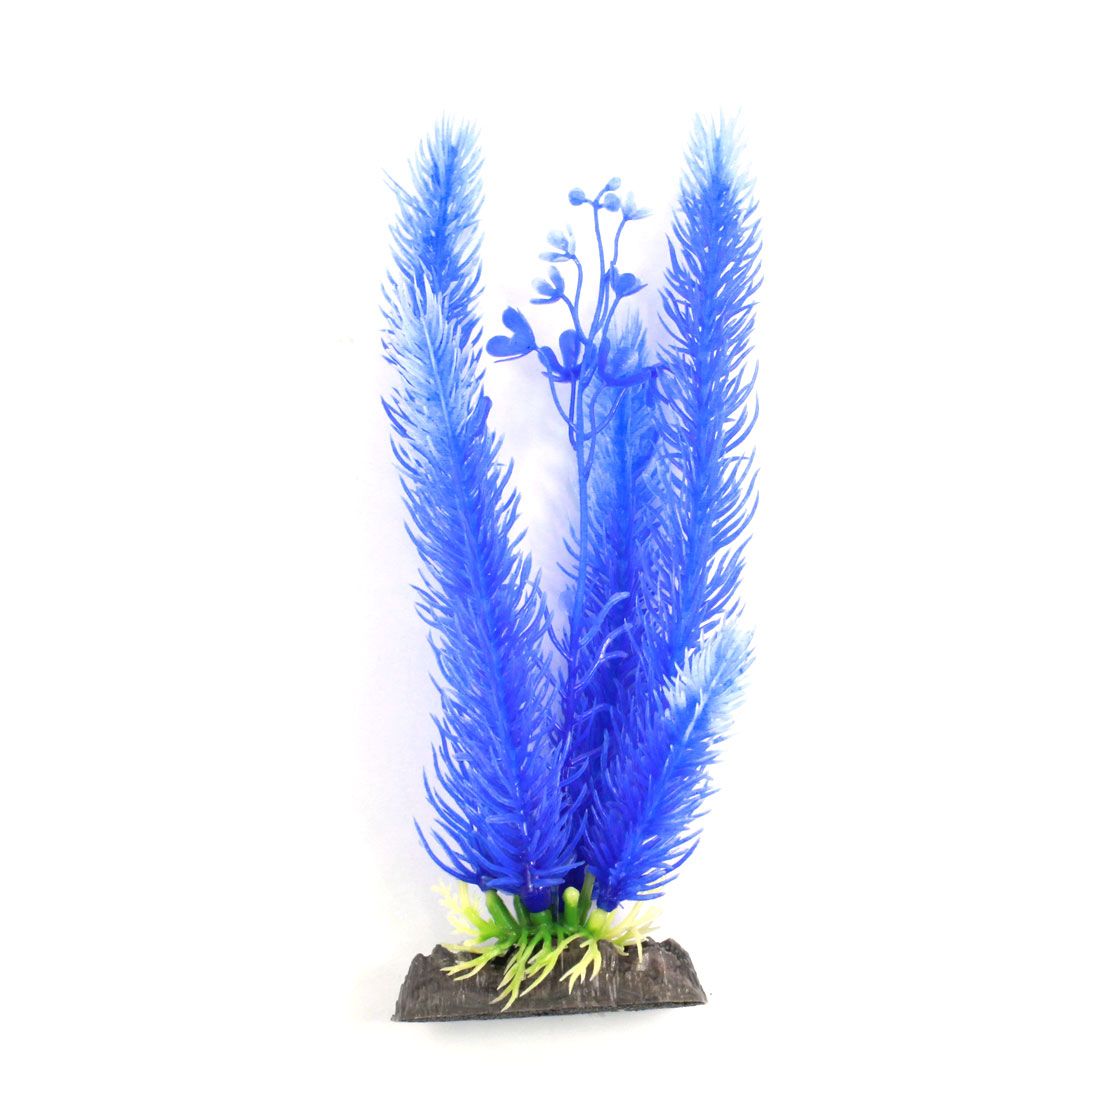 "Aquarium Manmade Flower Detailing Glow Water Aquatic Plant Grass Blue 7.9"" Height"